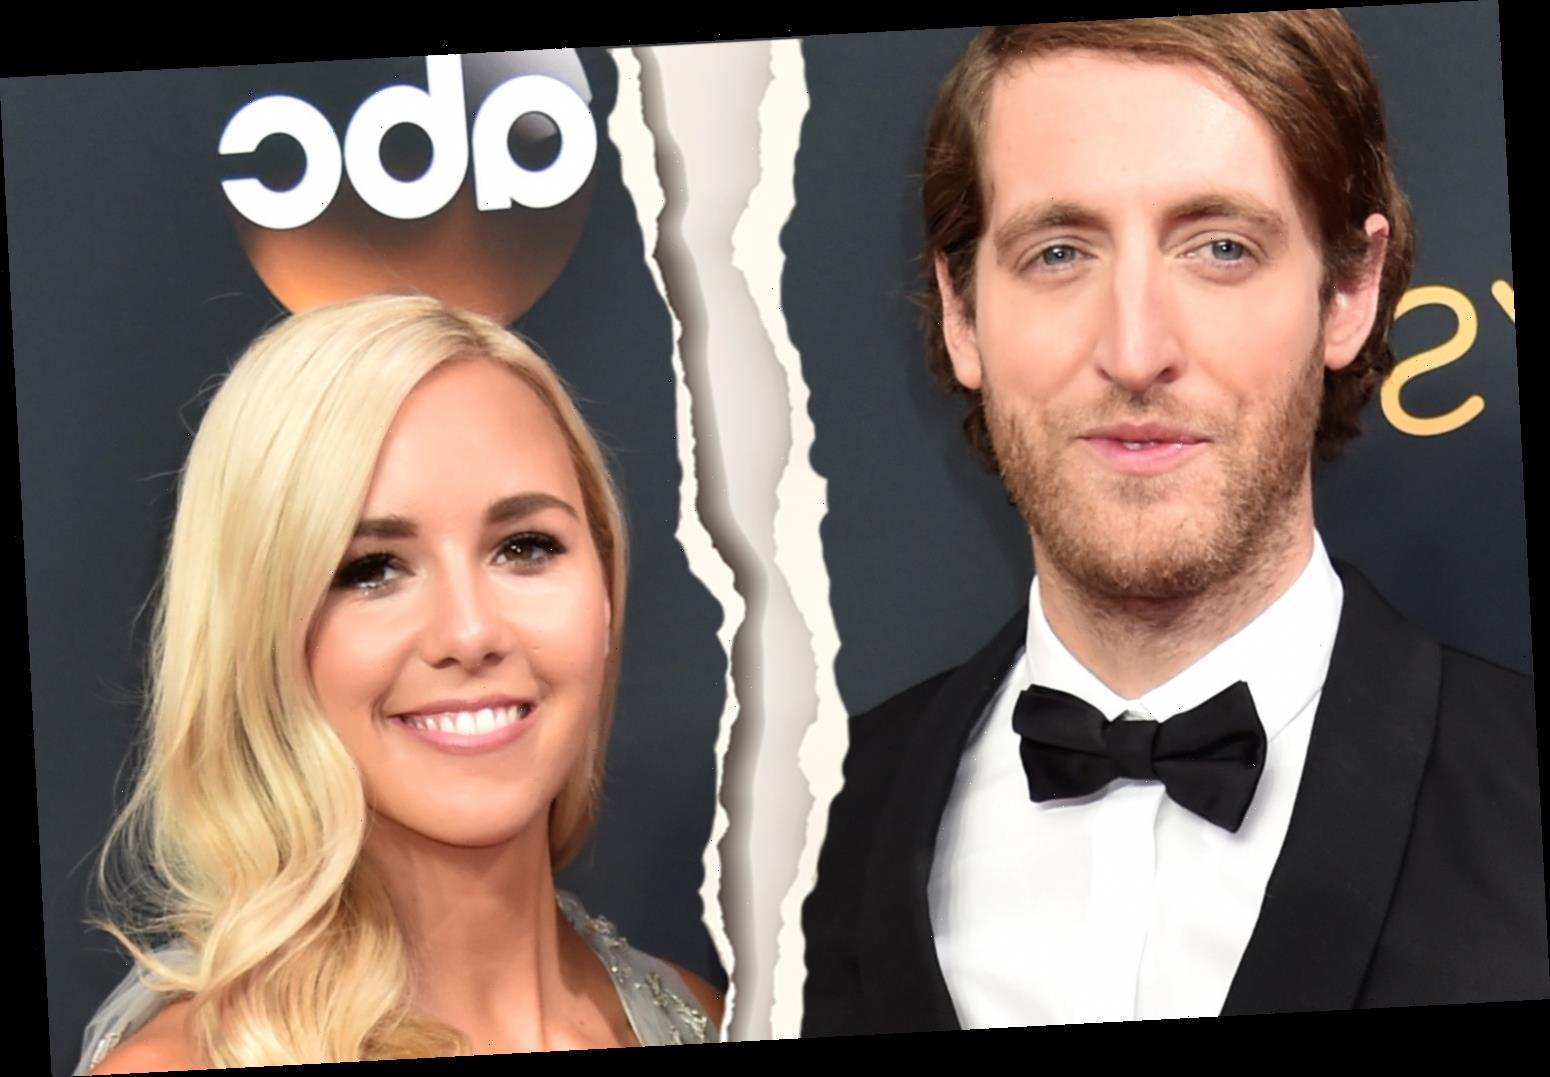 Silicon Valley star Thomas Middleditch's wife files for divorce after he claimed 'swinging saved their marriage' – The Sun